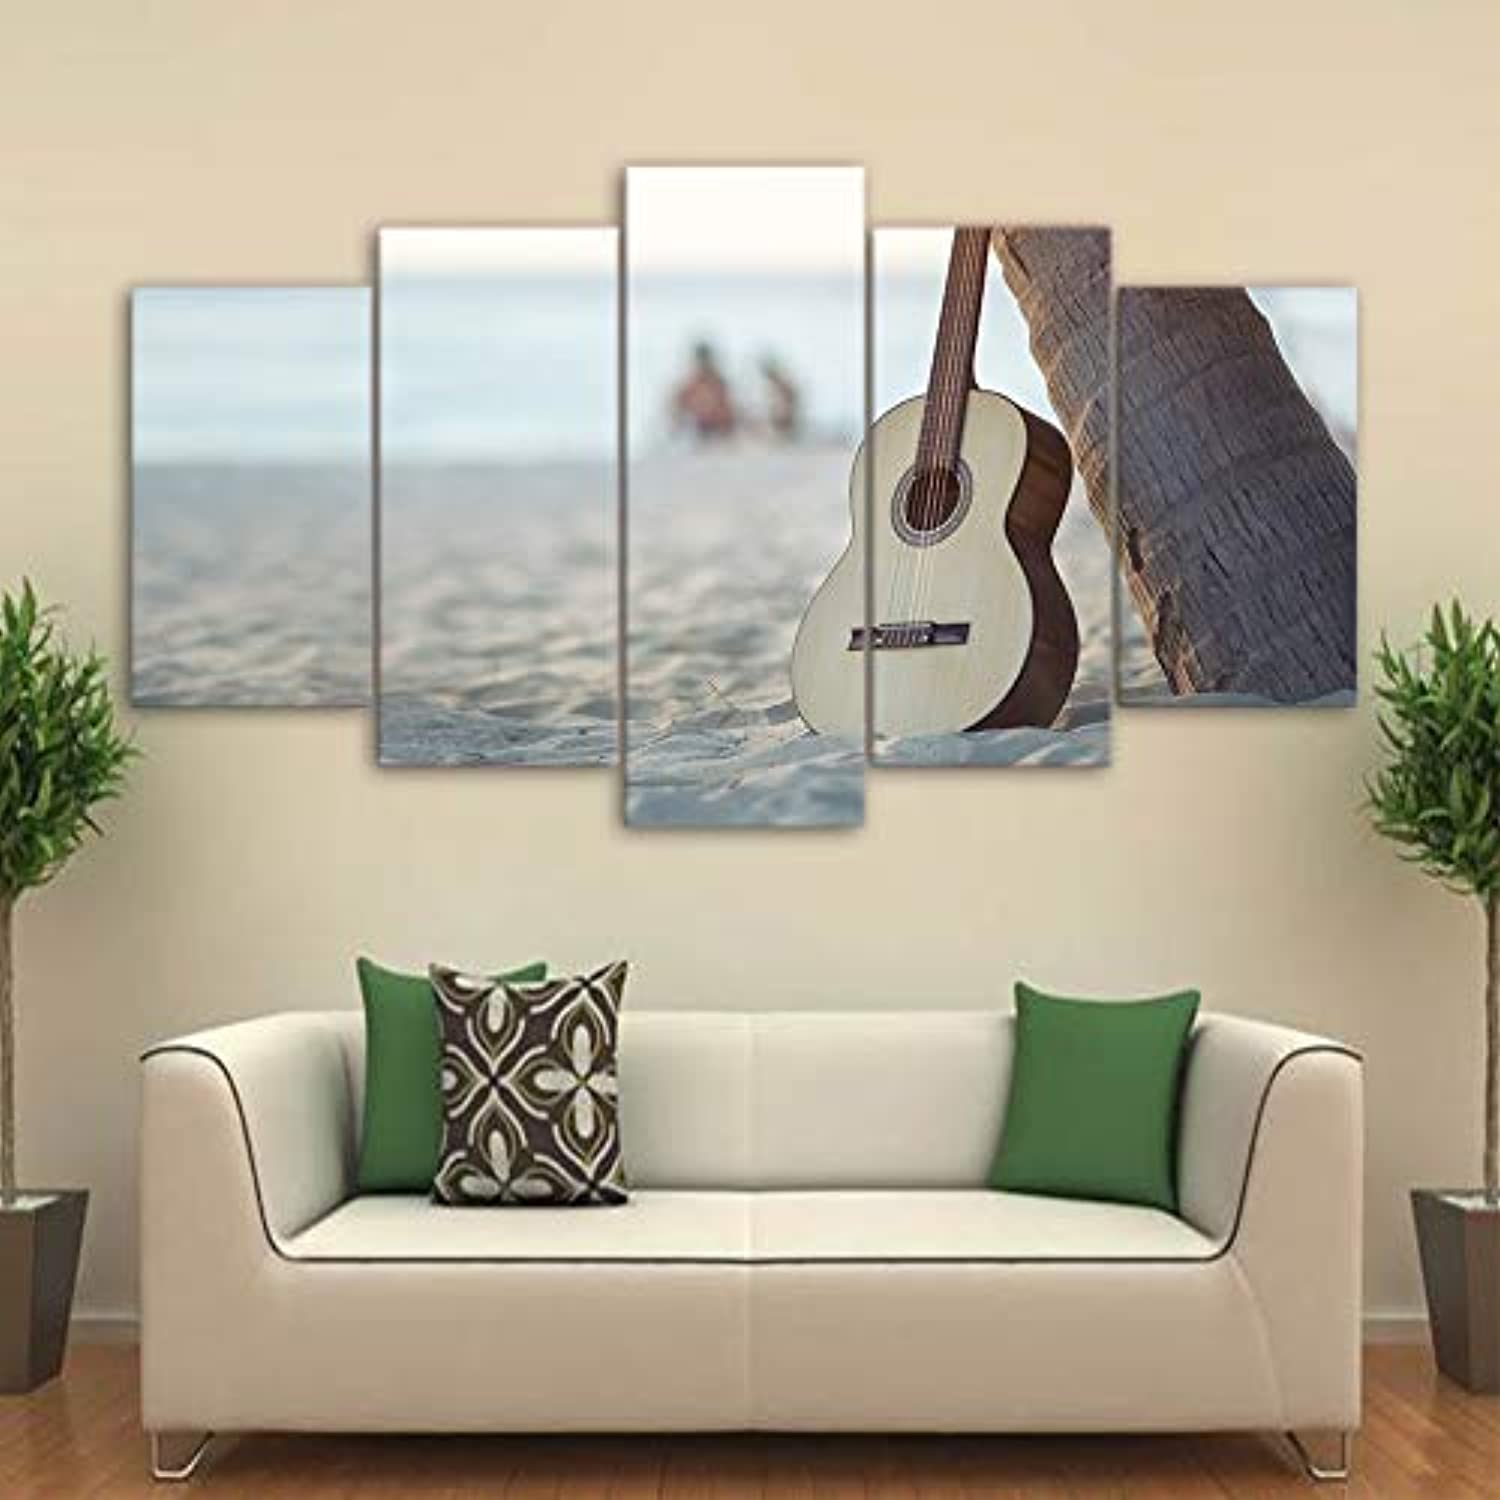 HD Printed Canvas Posters Frame Home Decor 5 Piece Pcs Guitar Beach Landscape Art Painting Modular Living Room Wall Pictures